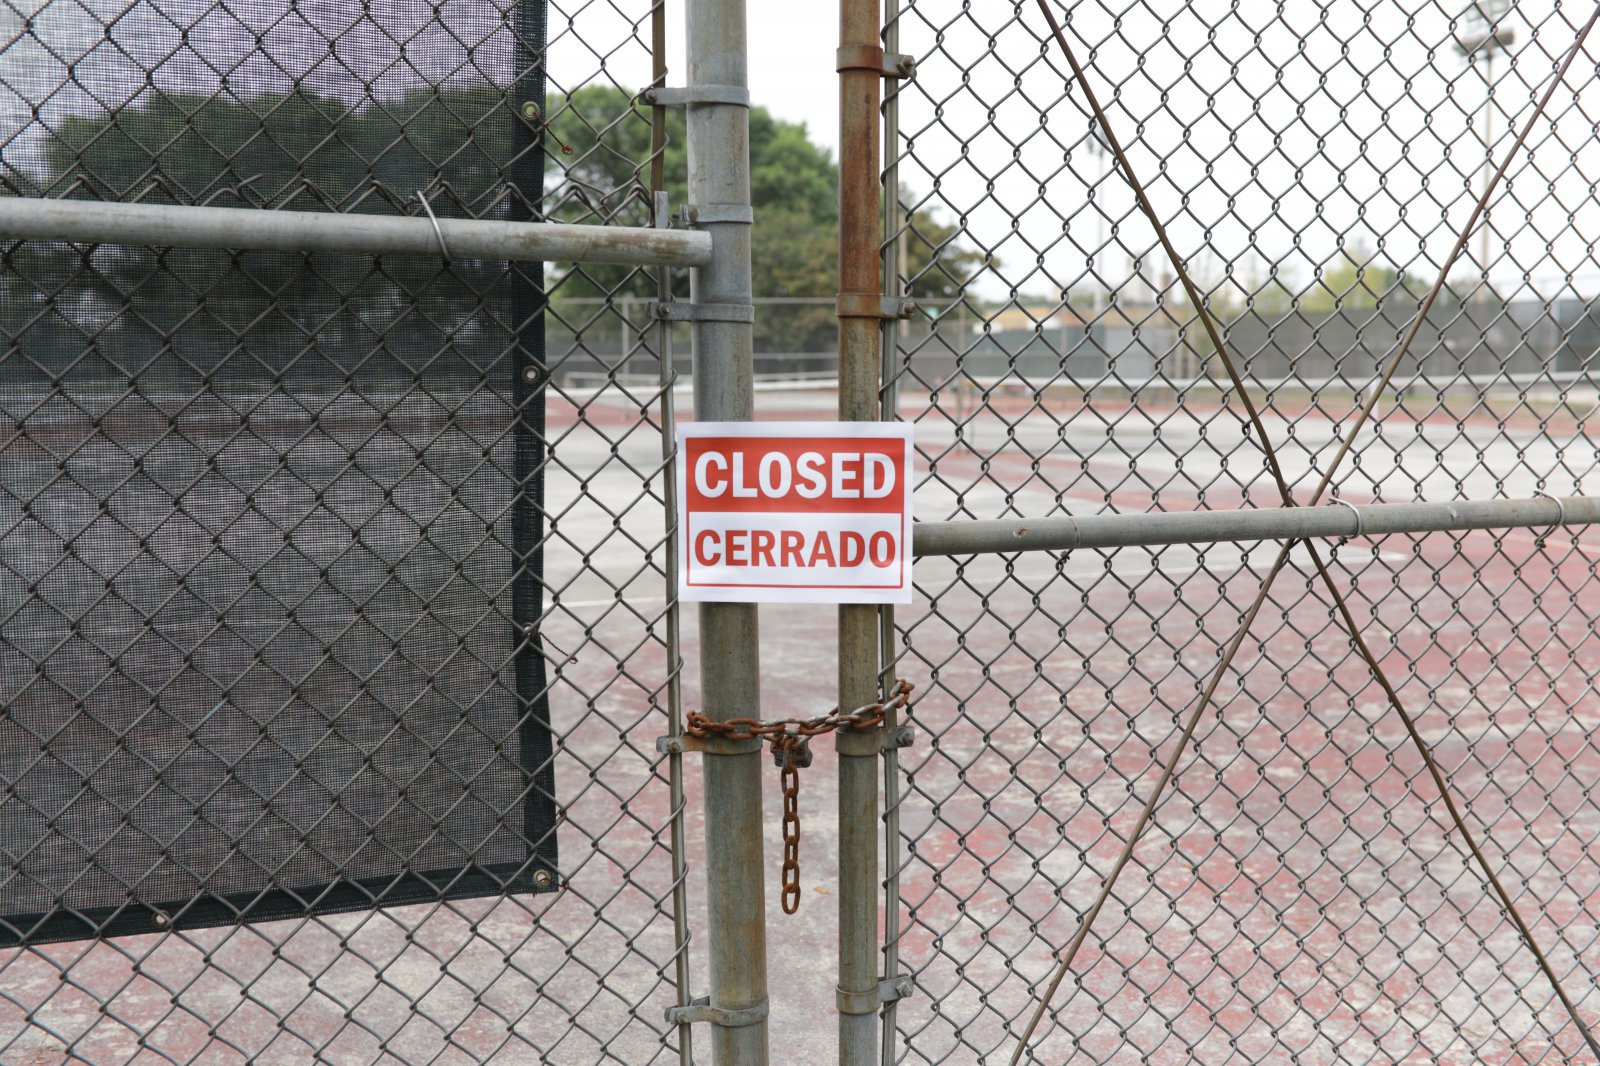 Burnham Park Tennis Courts